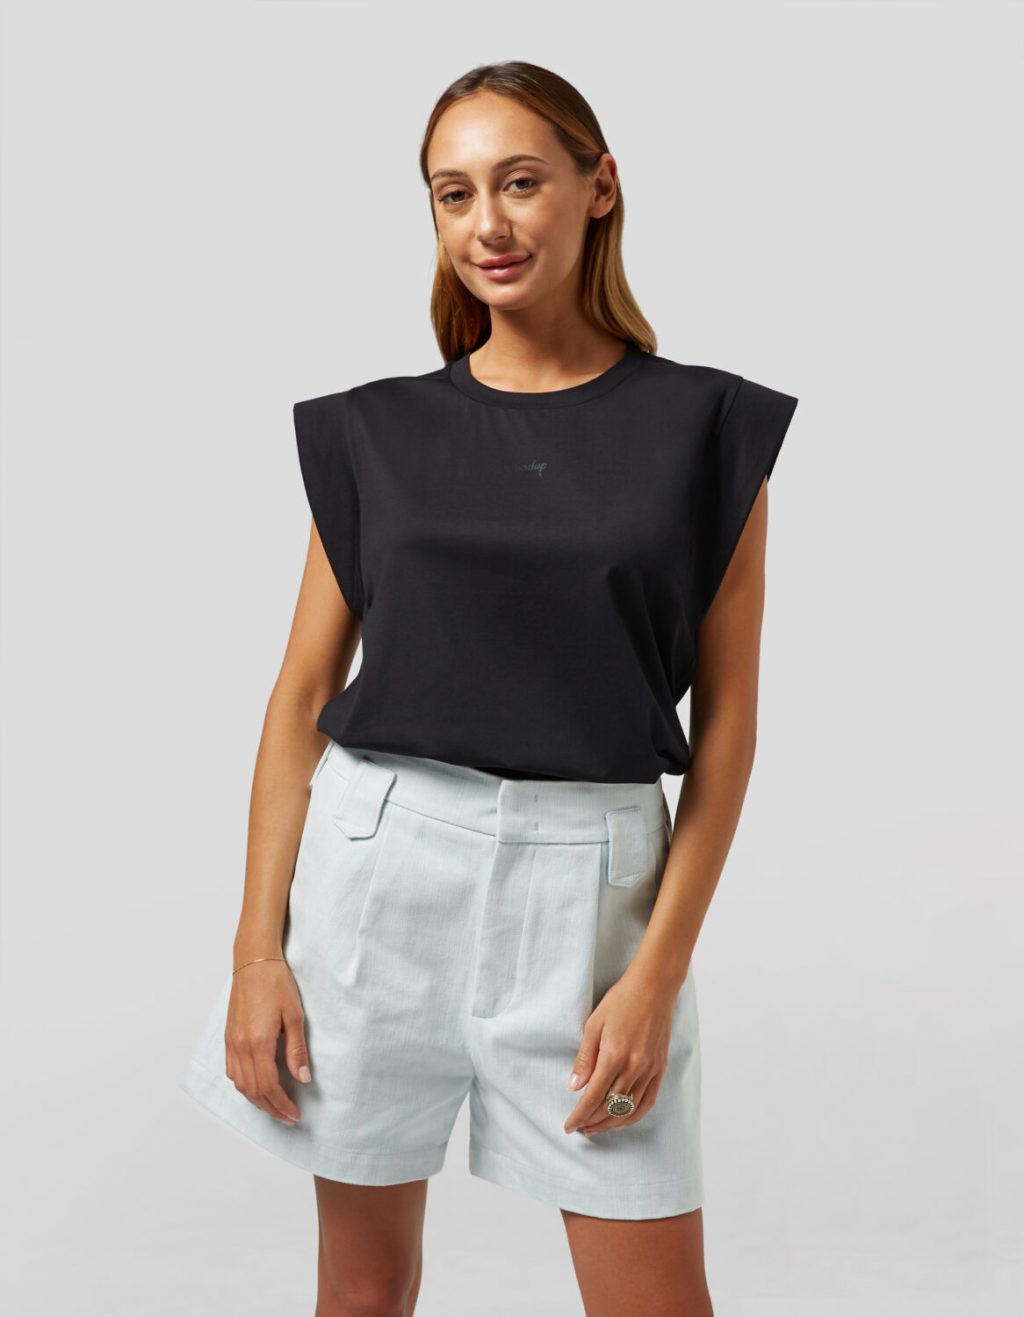 Collection Spring - Summer 2021 DONDUP SLEEVELESS REGURAL-FIT JERSEY TOP